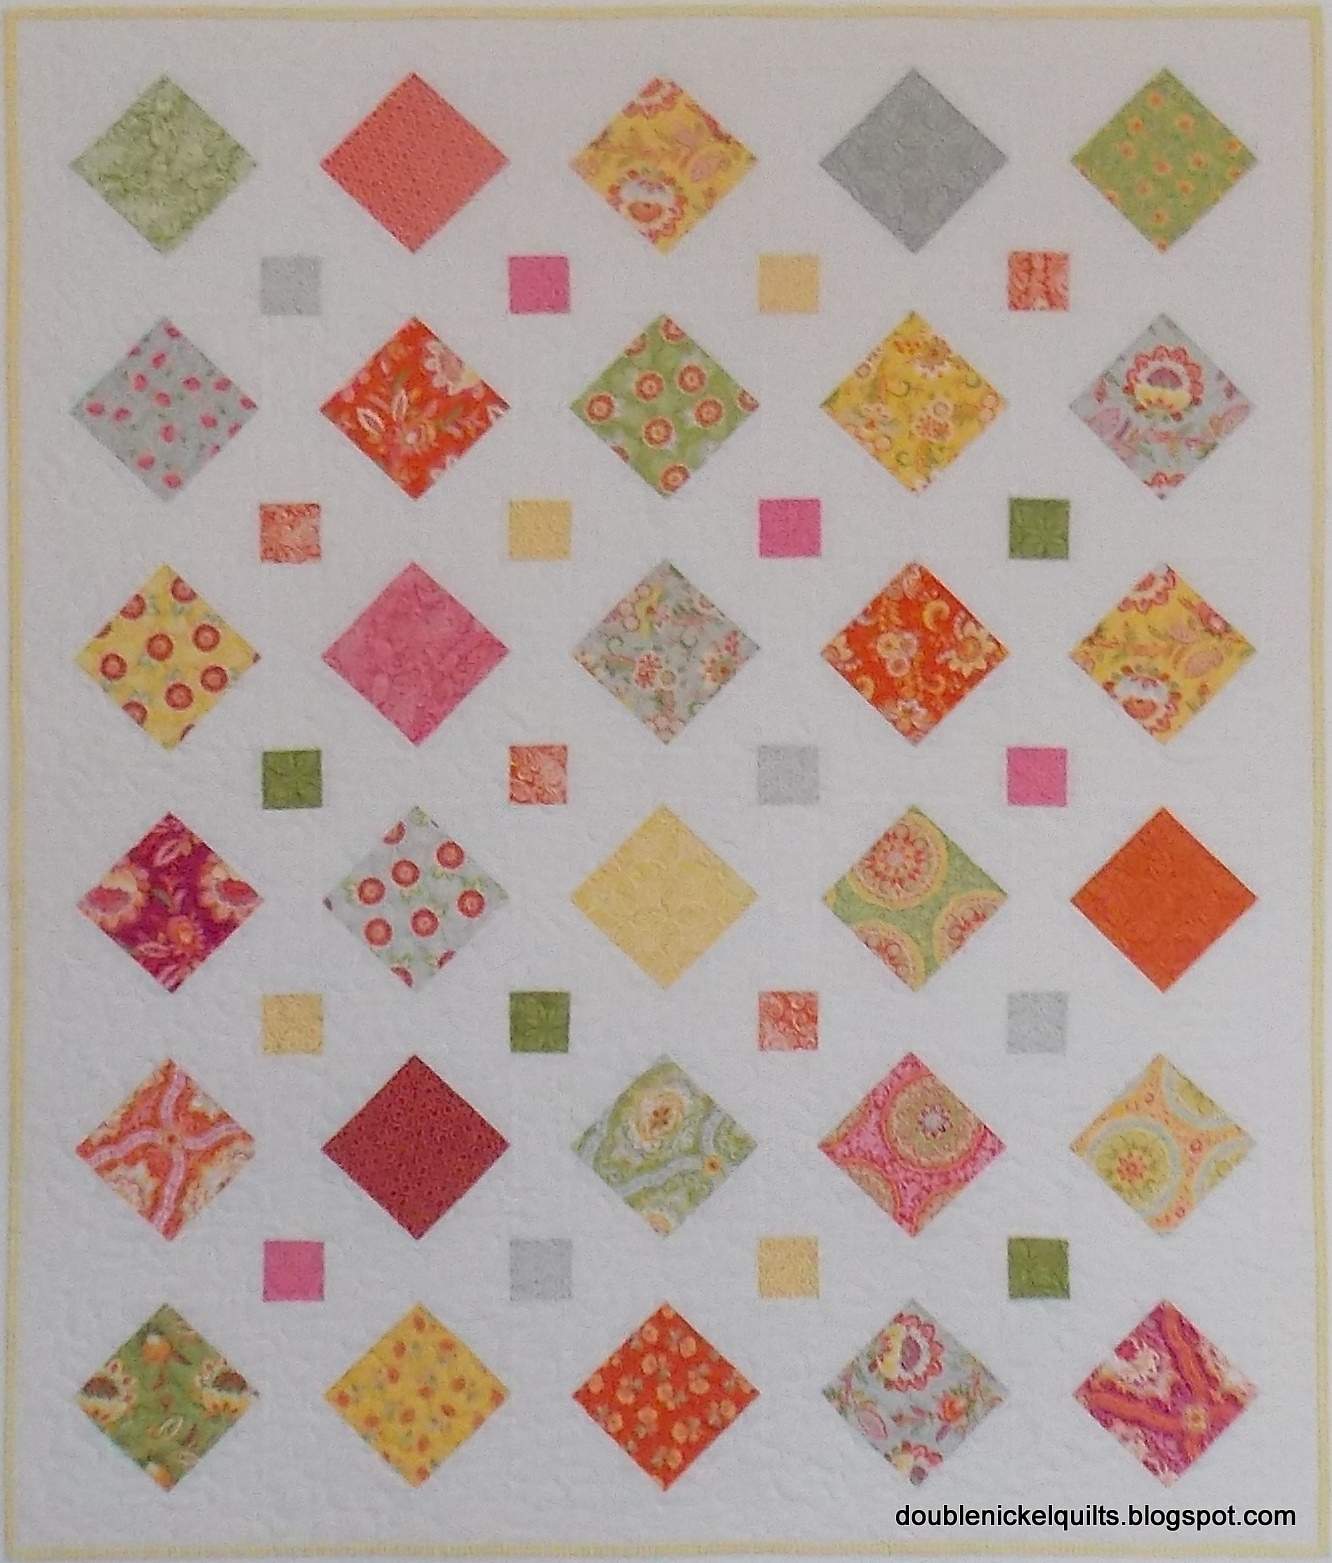 on gingham point inch square kit shop quilt web charm pack quilting stitches girl